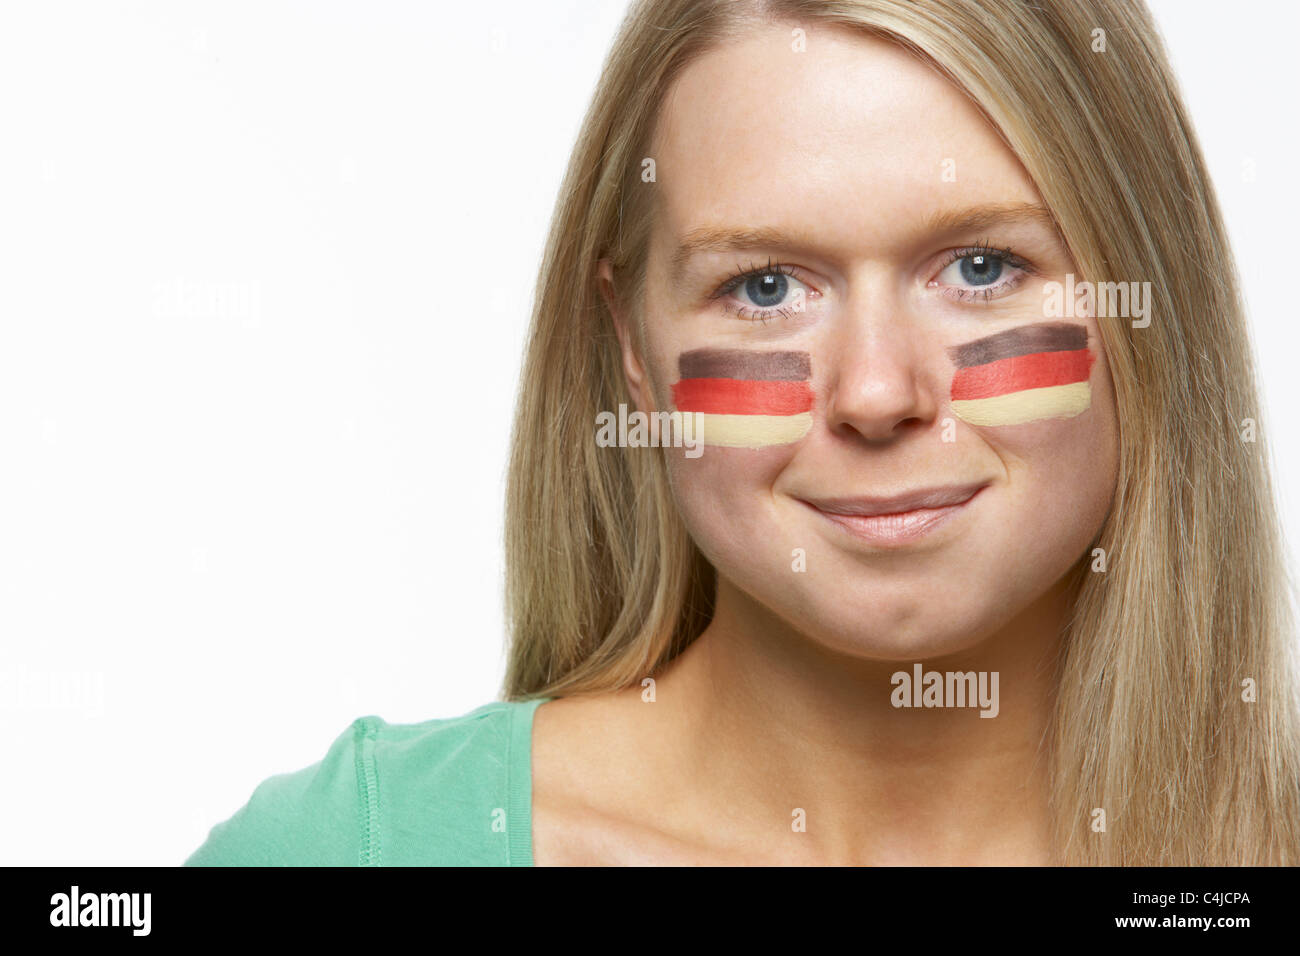 Young Female Sports Fan With German Flag Painted On Face - Stock Image